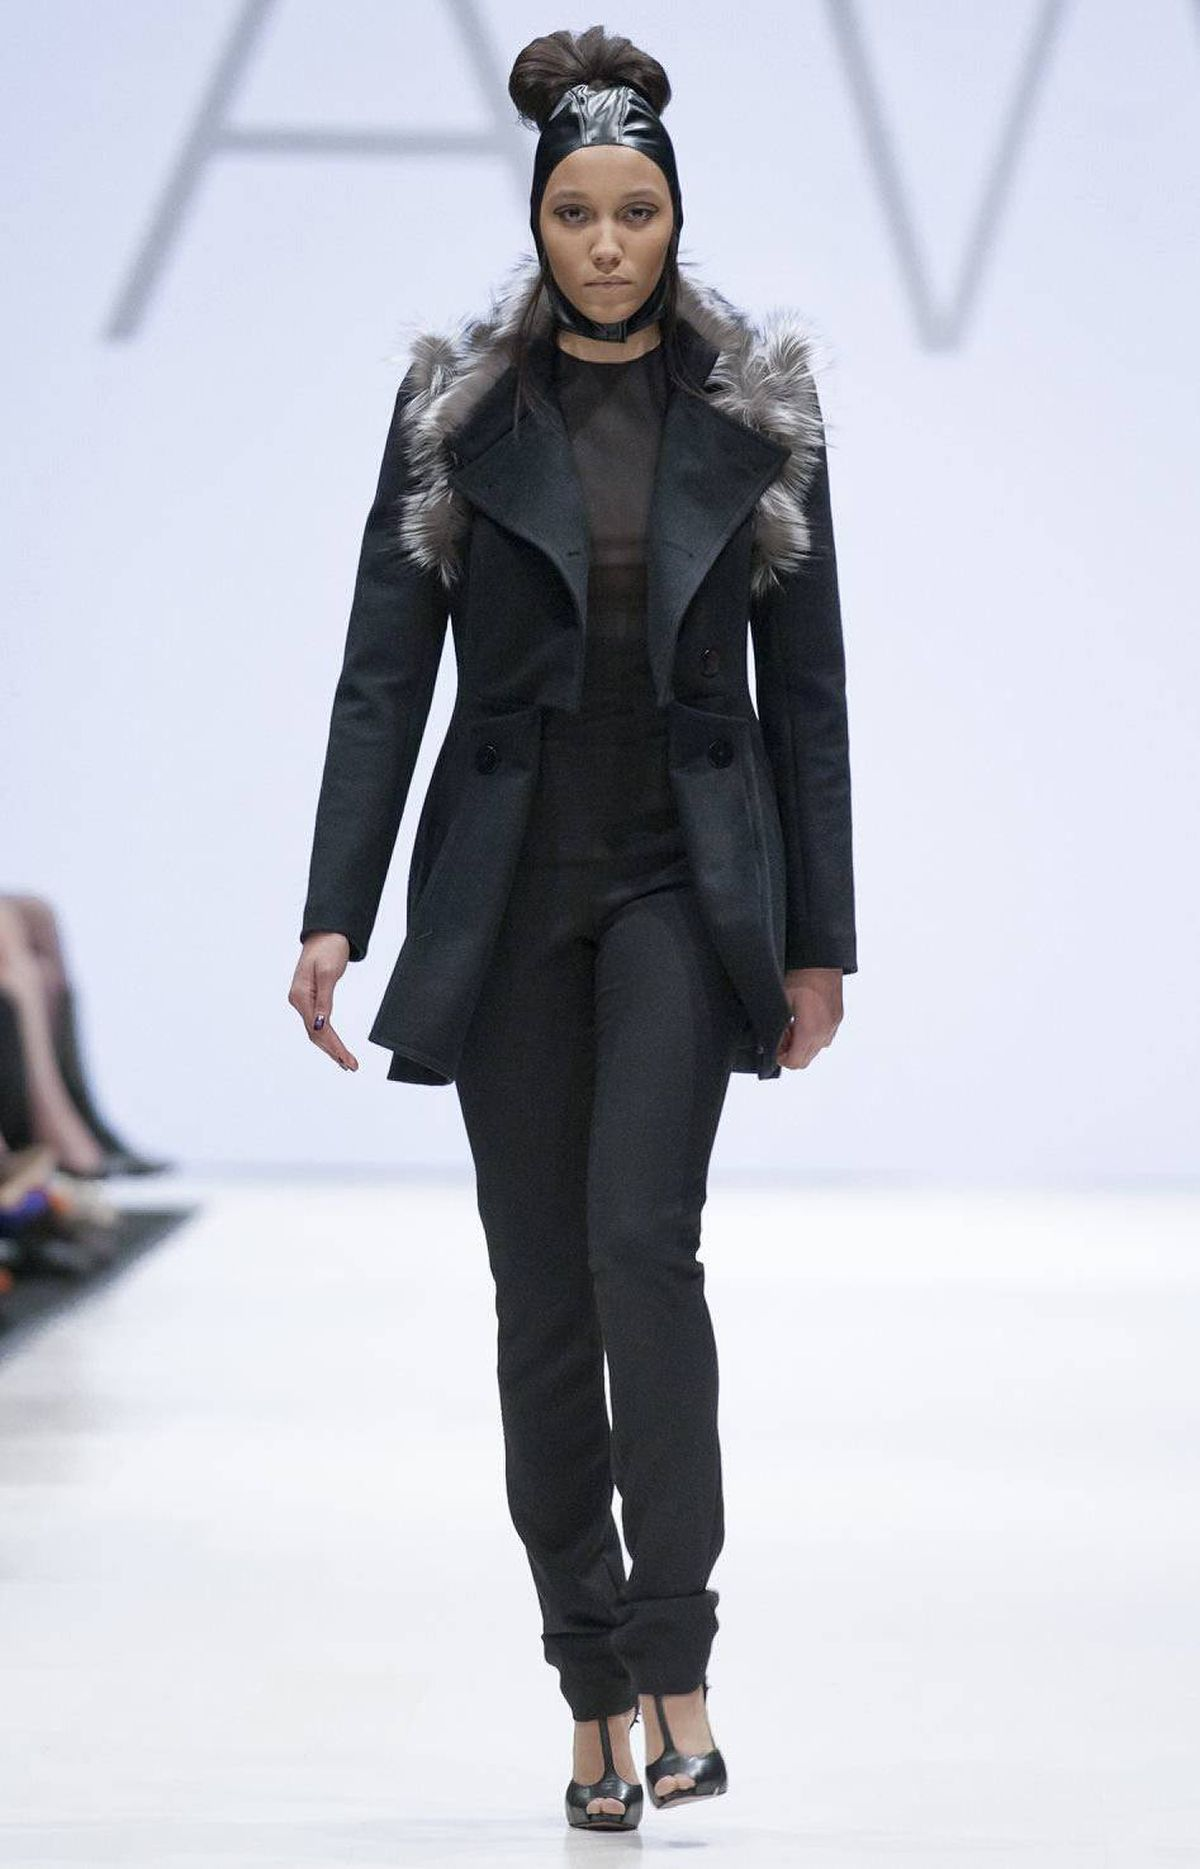 Fong's collection for VAWK, however, was designed for a different kind of working woman; specifically, a 'Sci-Fi Samurai' unafraid to don leather headgear, statement coats and flashy gowns to get the job done.